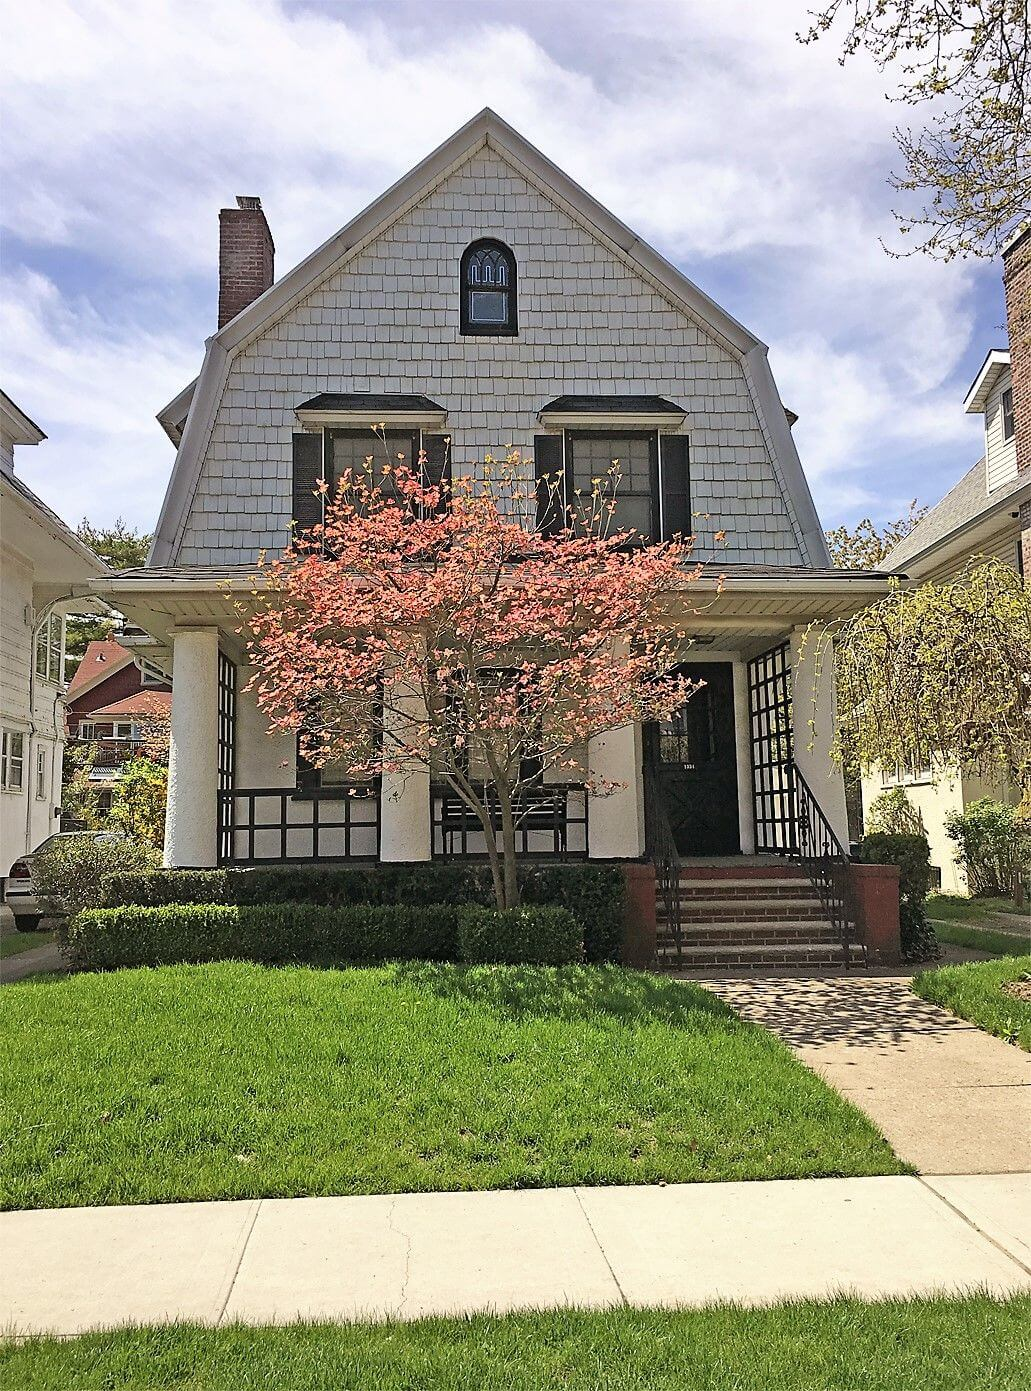 Brooklyn Homes for Sale in Midwood at 1334 E. 24th Street